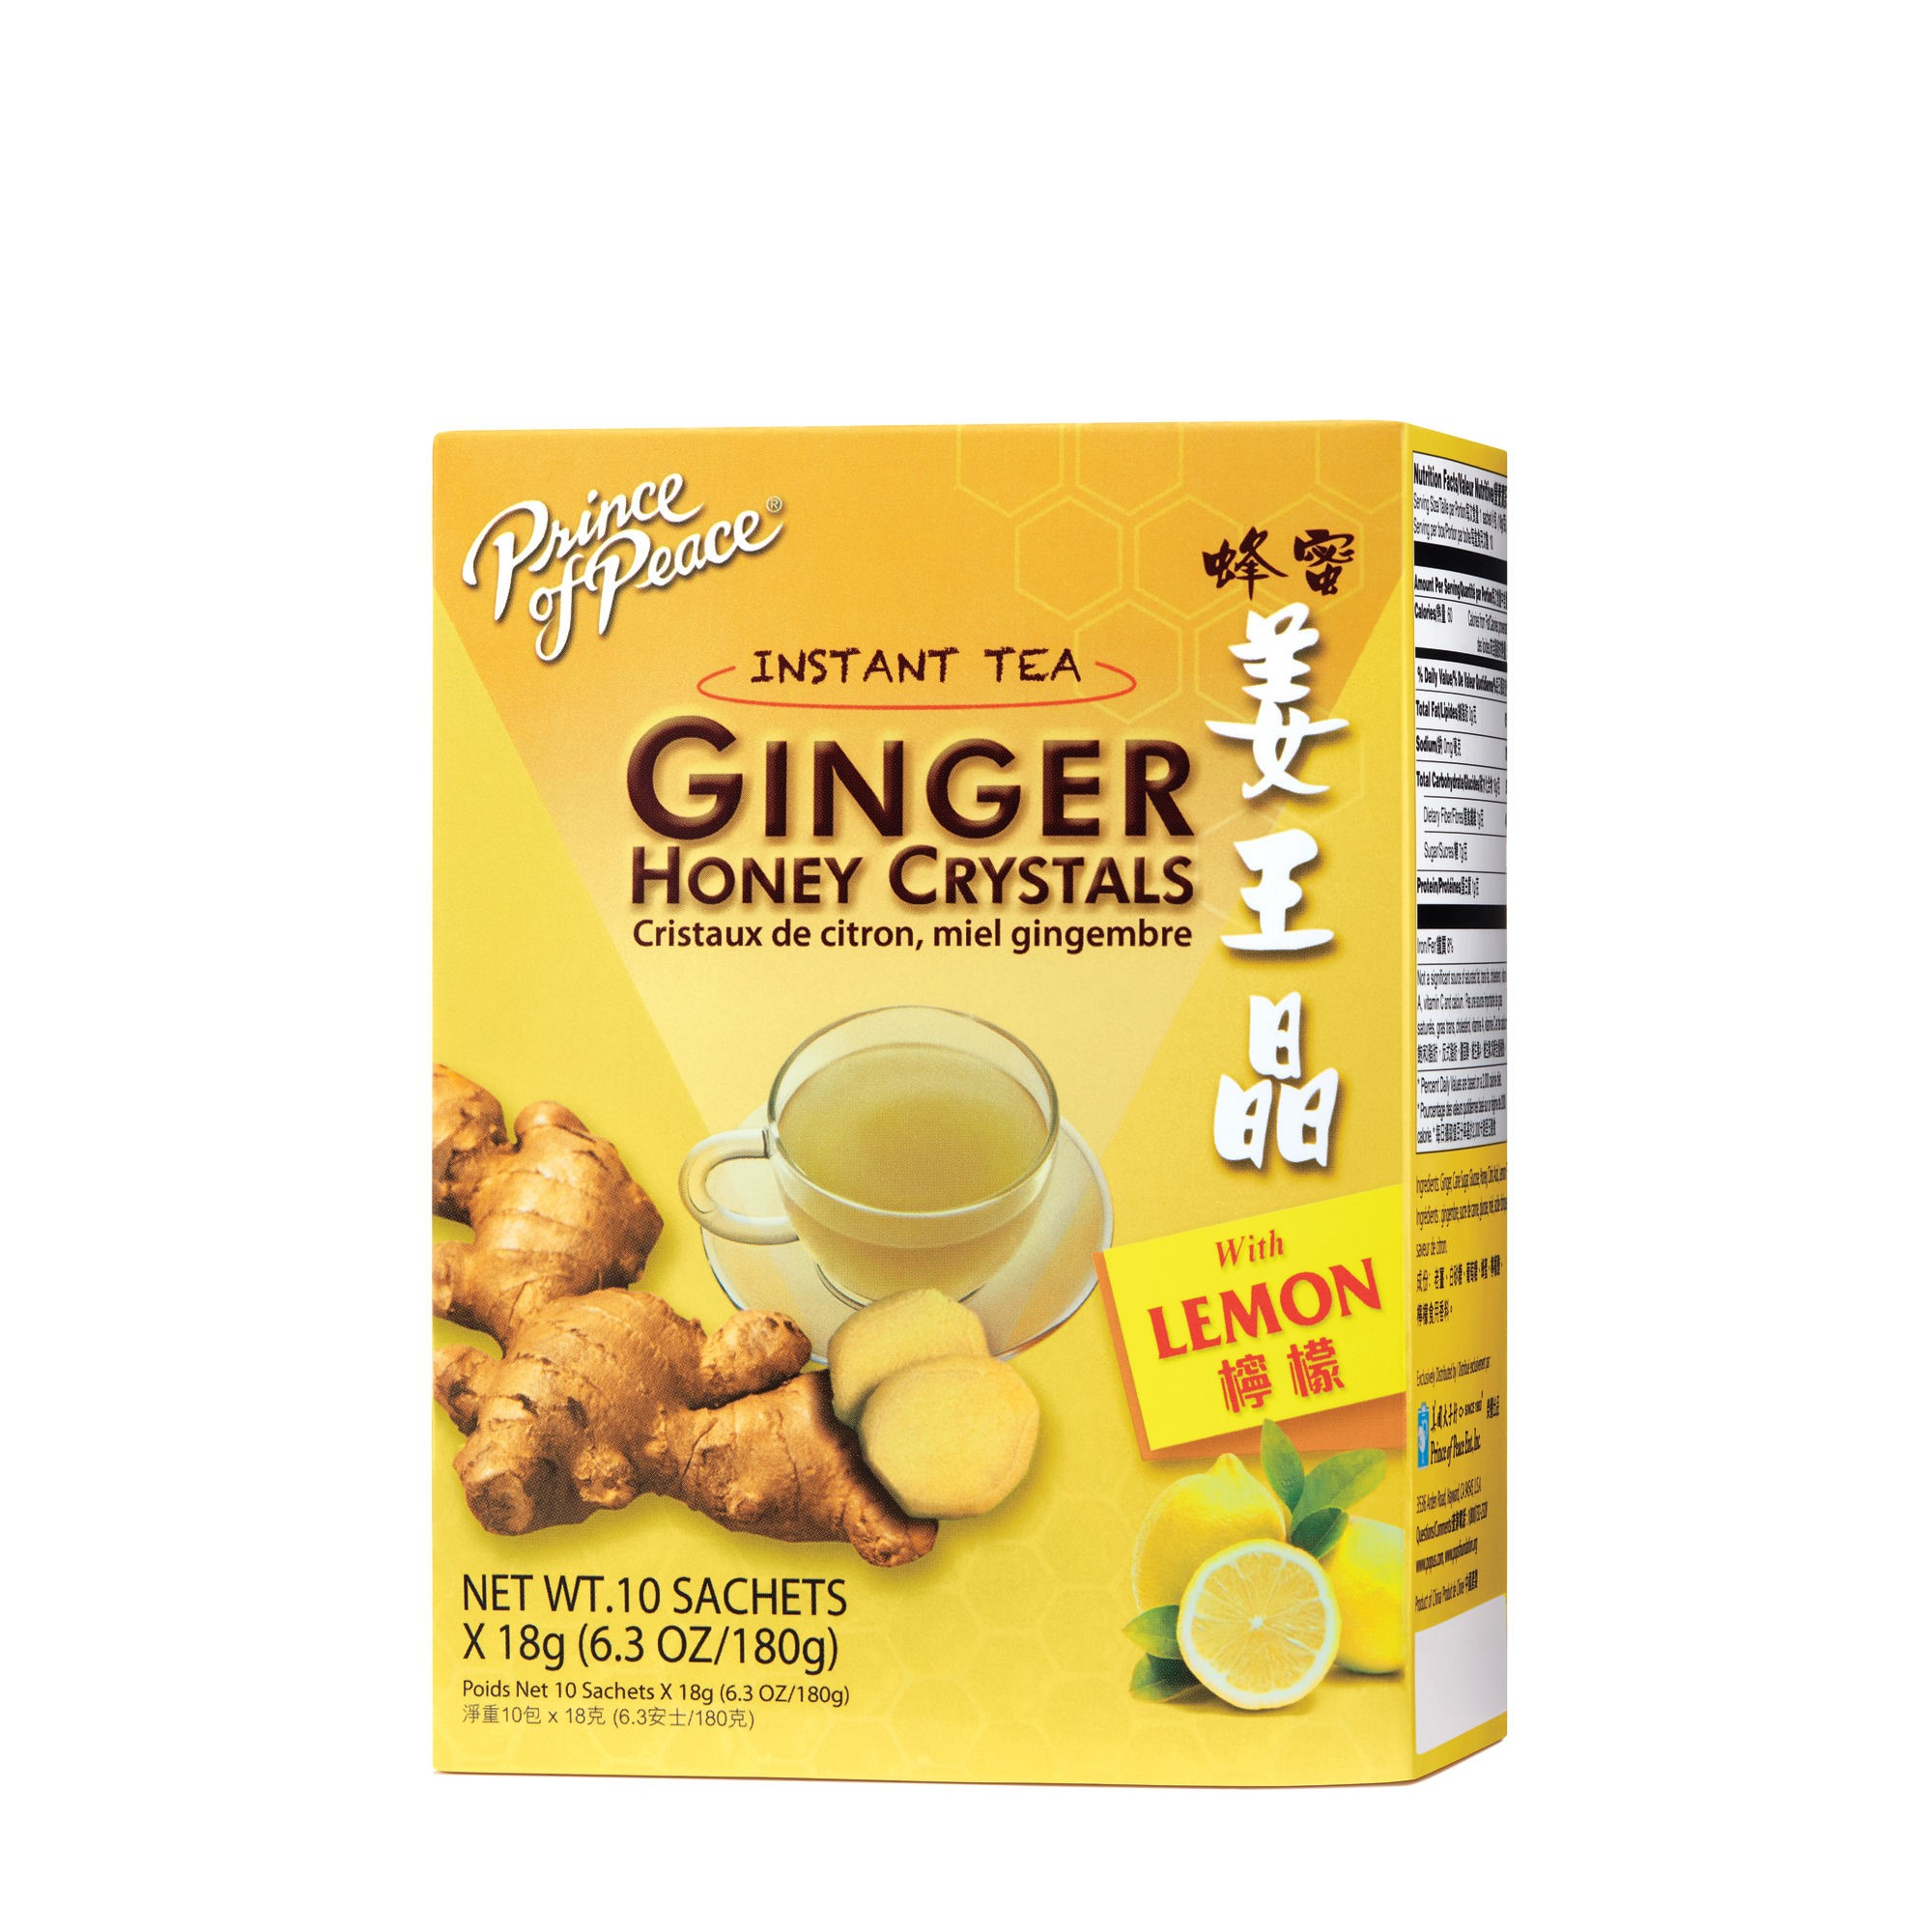 Prince of Peace Ginger Honey Crystals Instant Tea Bags, Lemon, 10 Ct